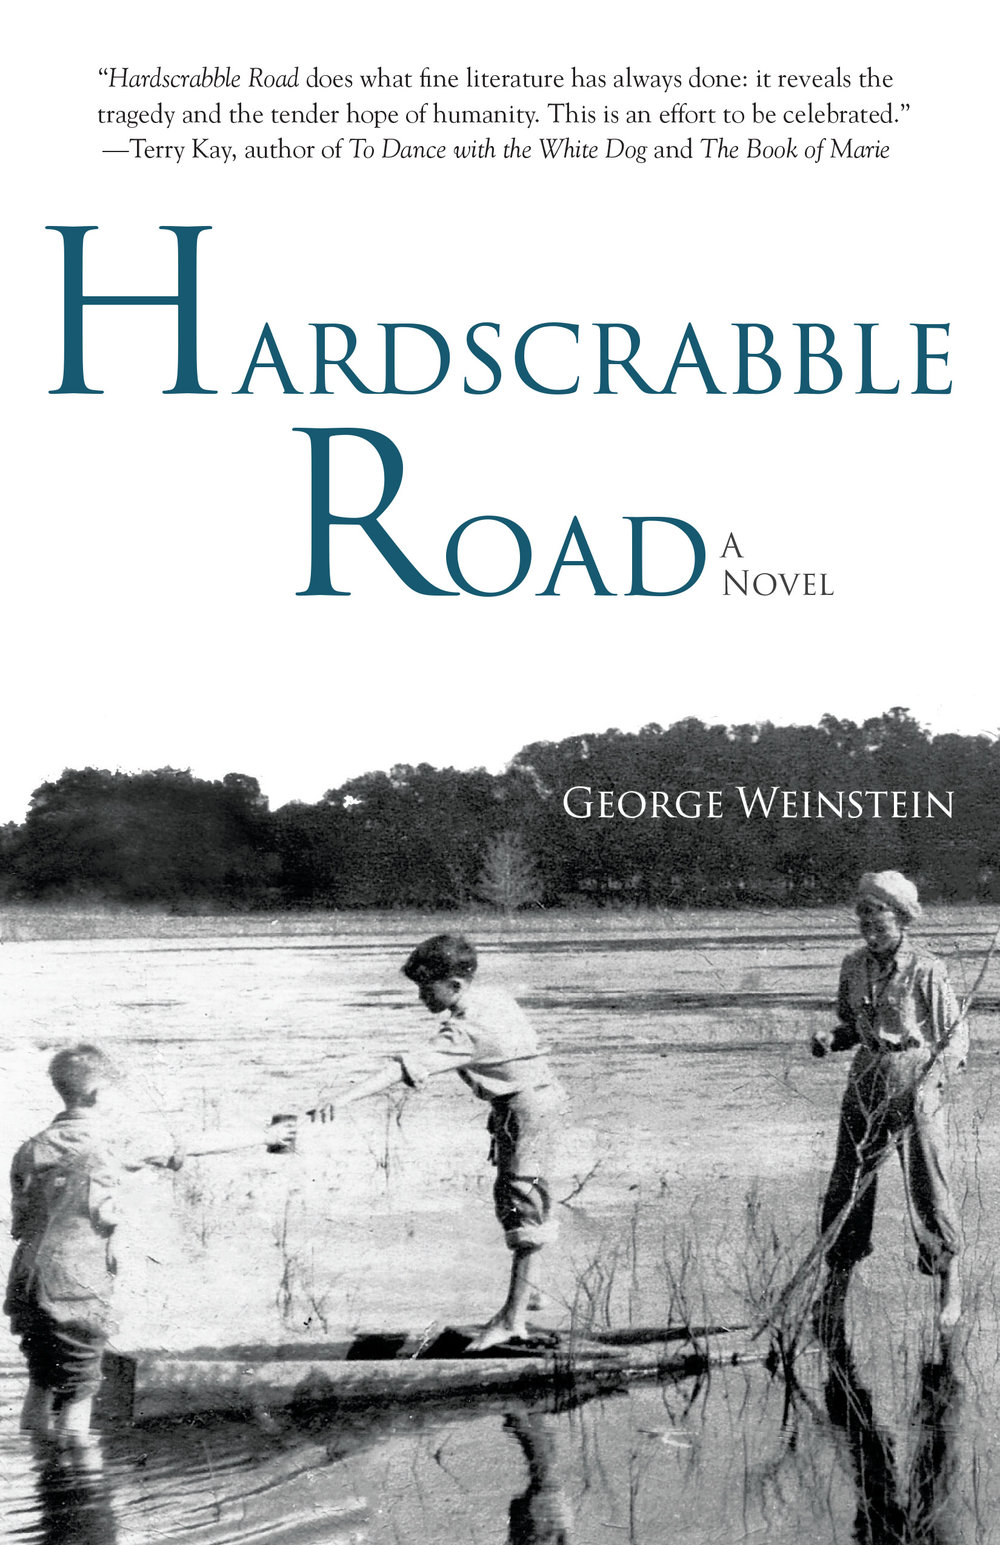 Hardscrabble Road by George Weinstein (SFK Press, 2018)